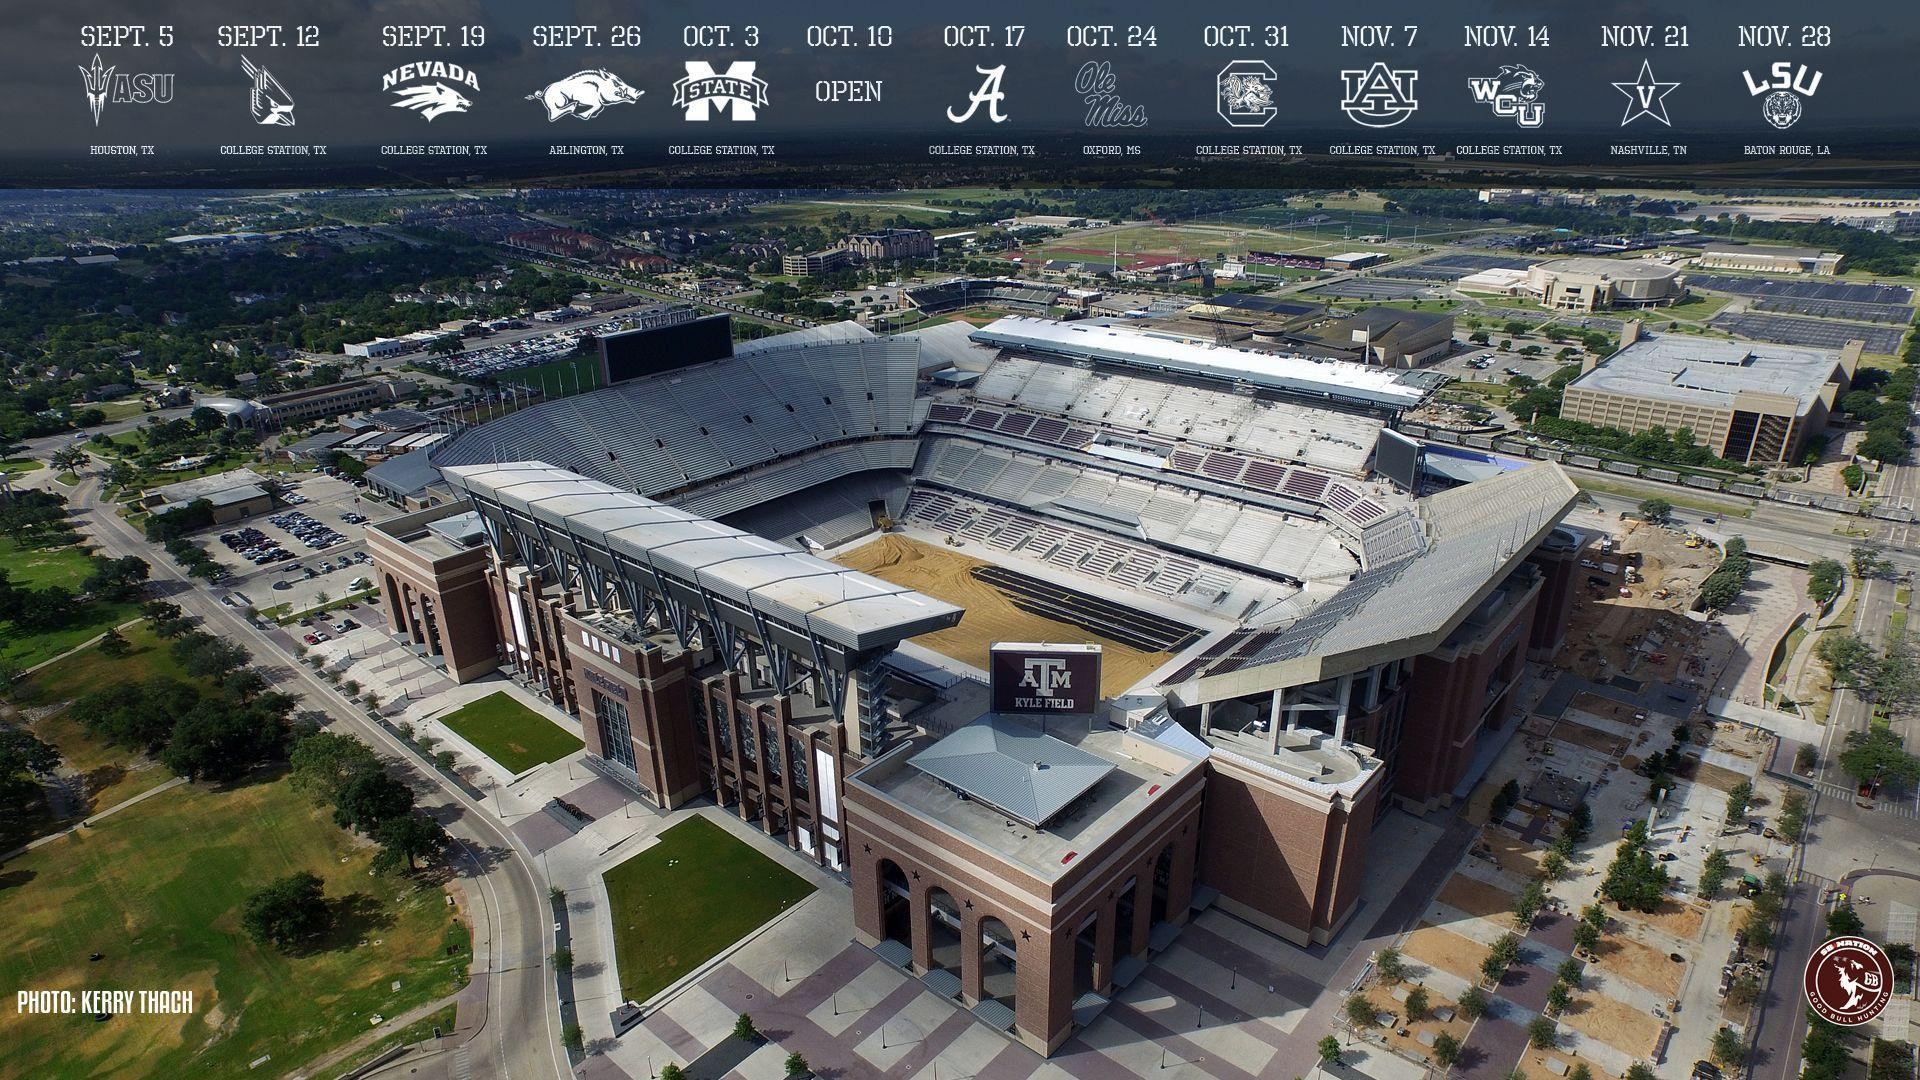 New Texas A&M wallpapers of Renovated Kyle Field for your phones